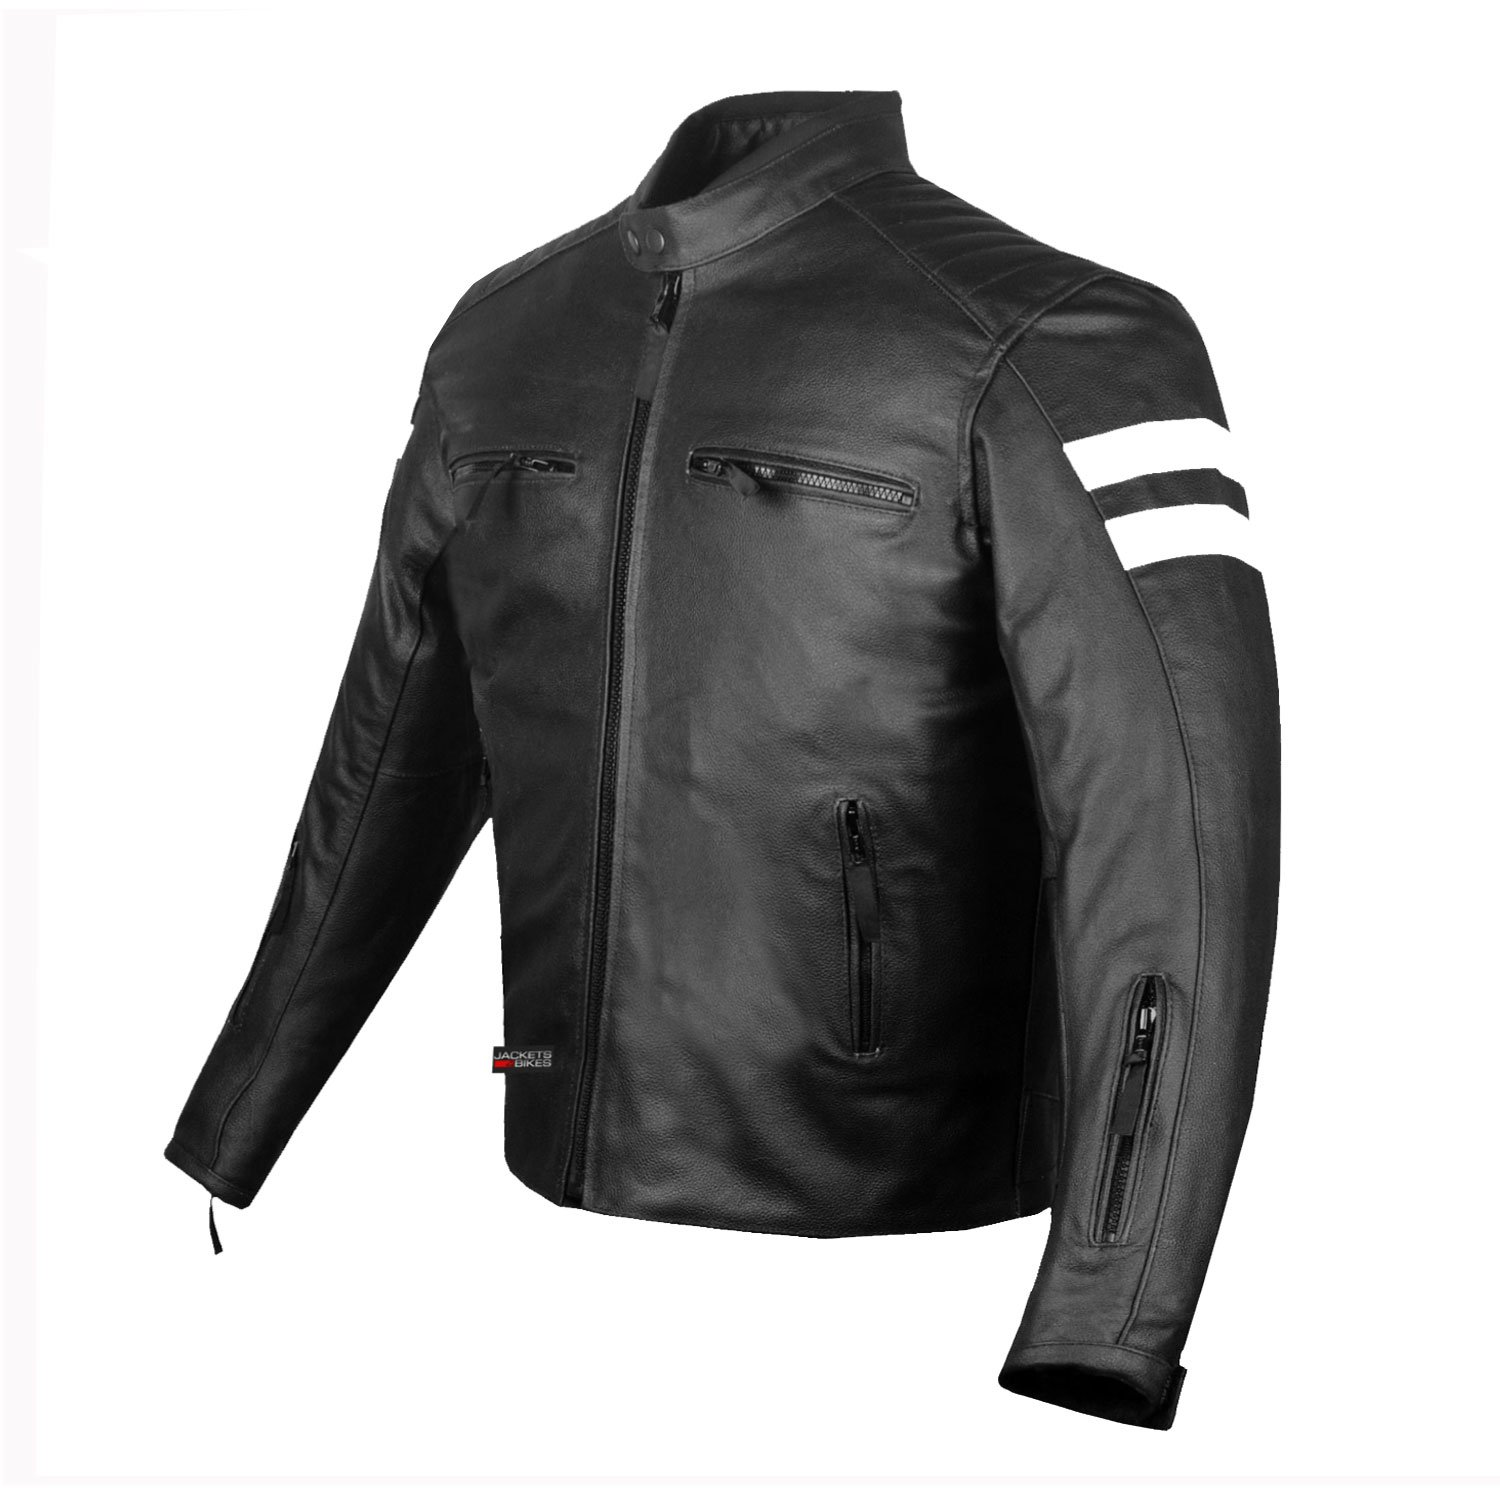 New AXE Men's Leather Jacket Motorcycle Armor biker safety S by Jackets 4 Bikes